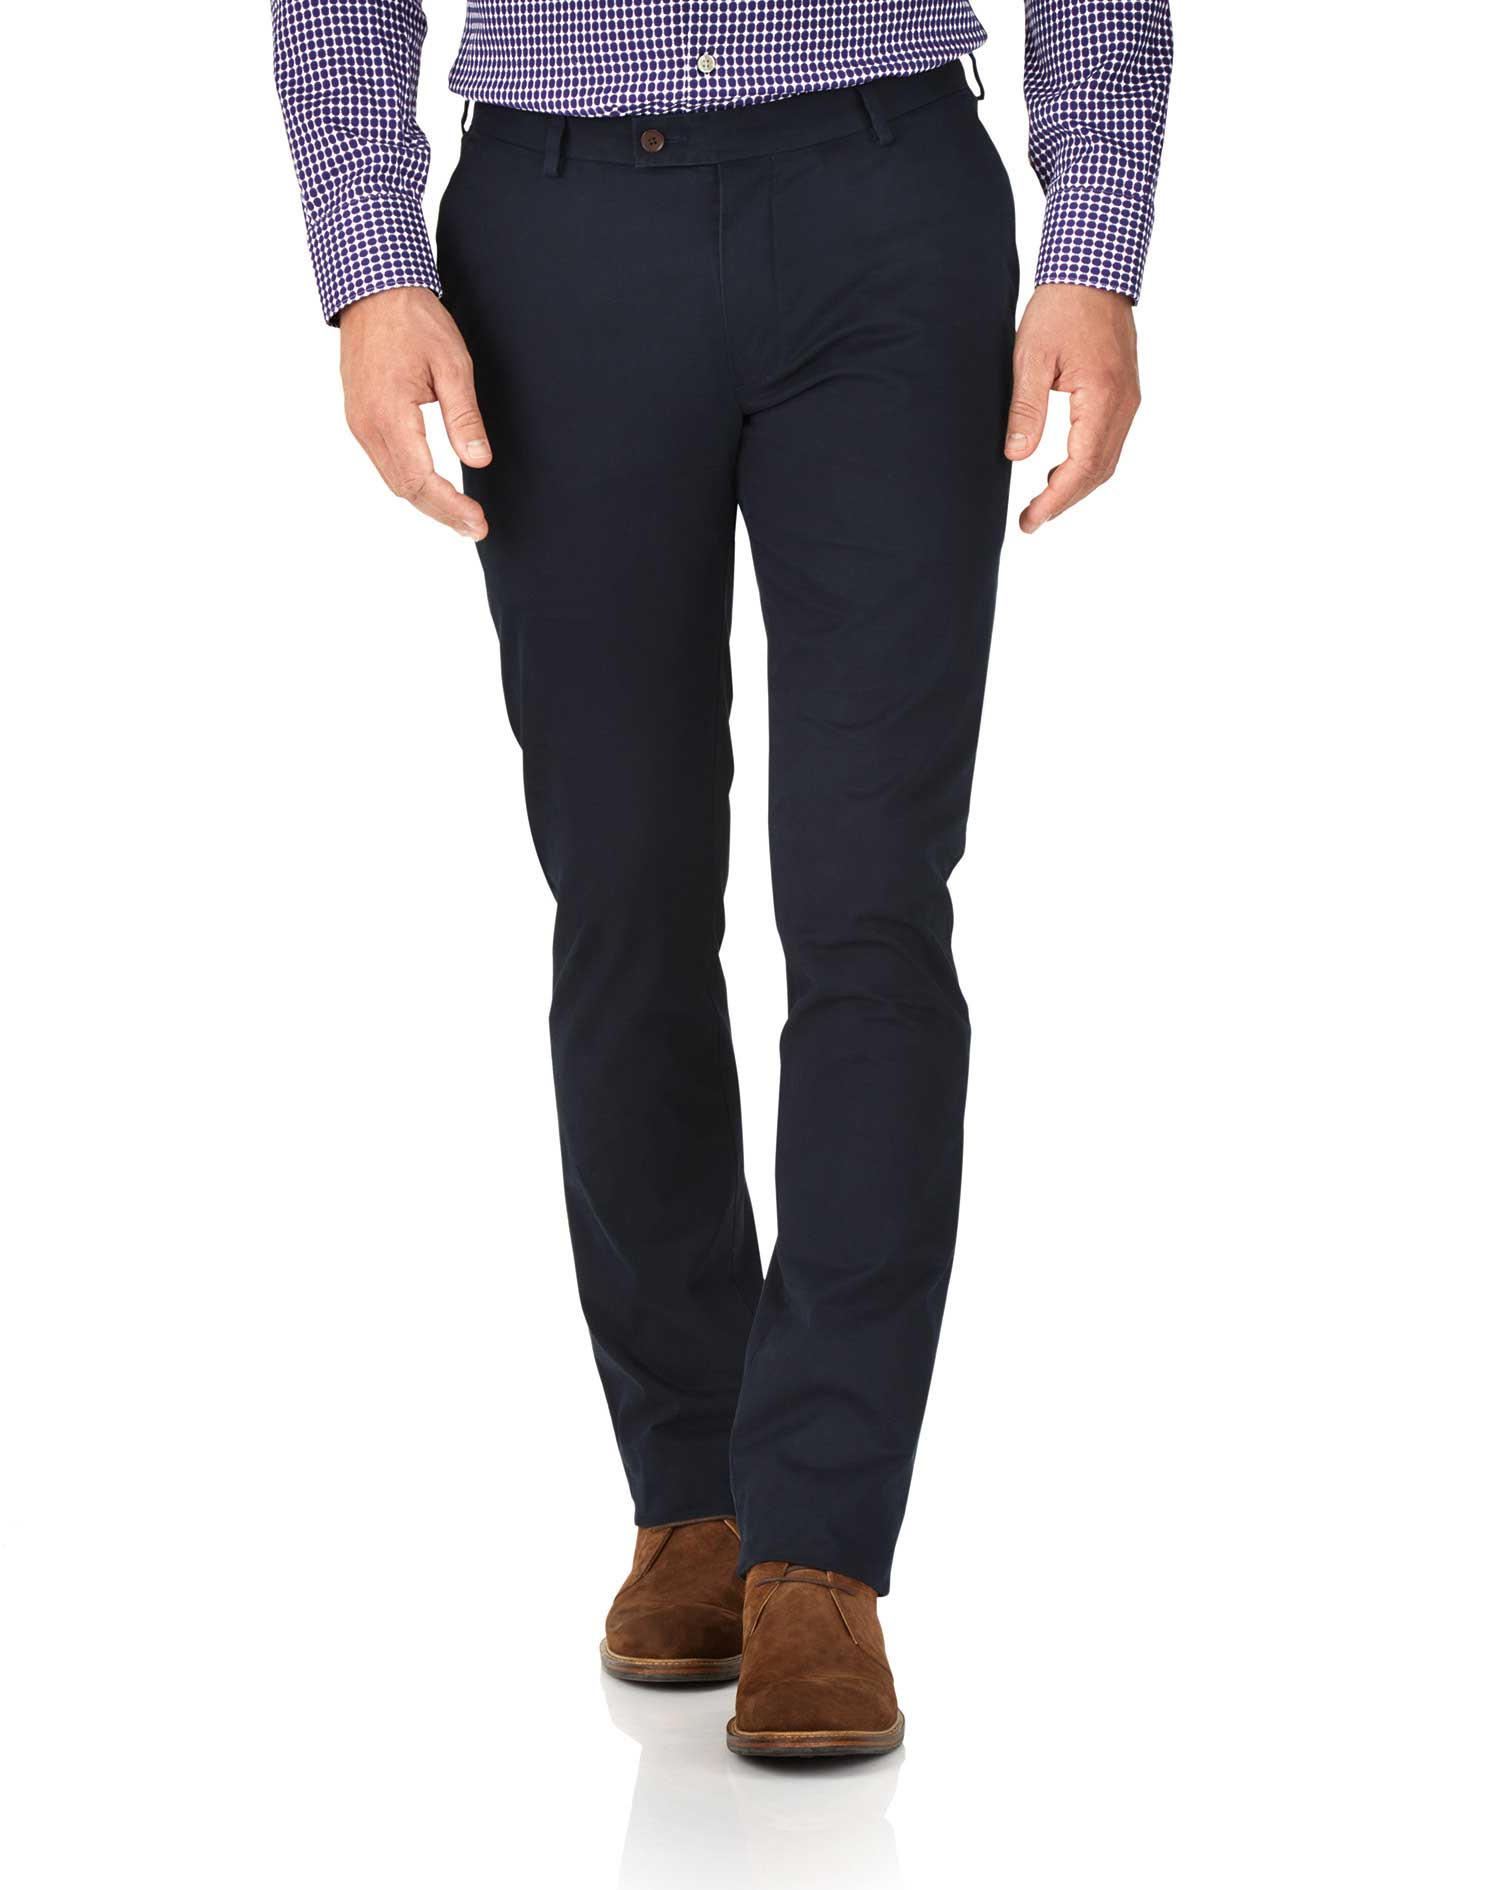 Navy Extra Slim Fit Stretch Cotton Chino Trousers Size W34 L32 by Charles Tyrwhitt